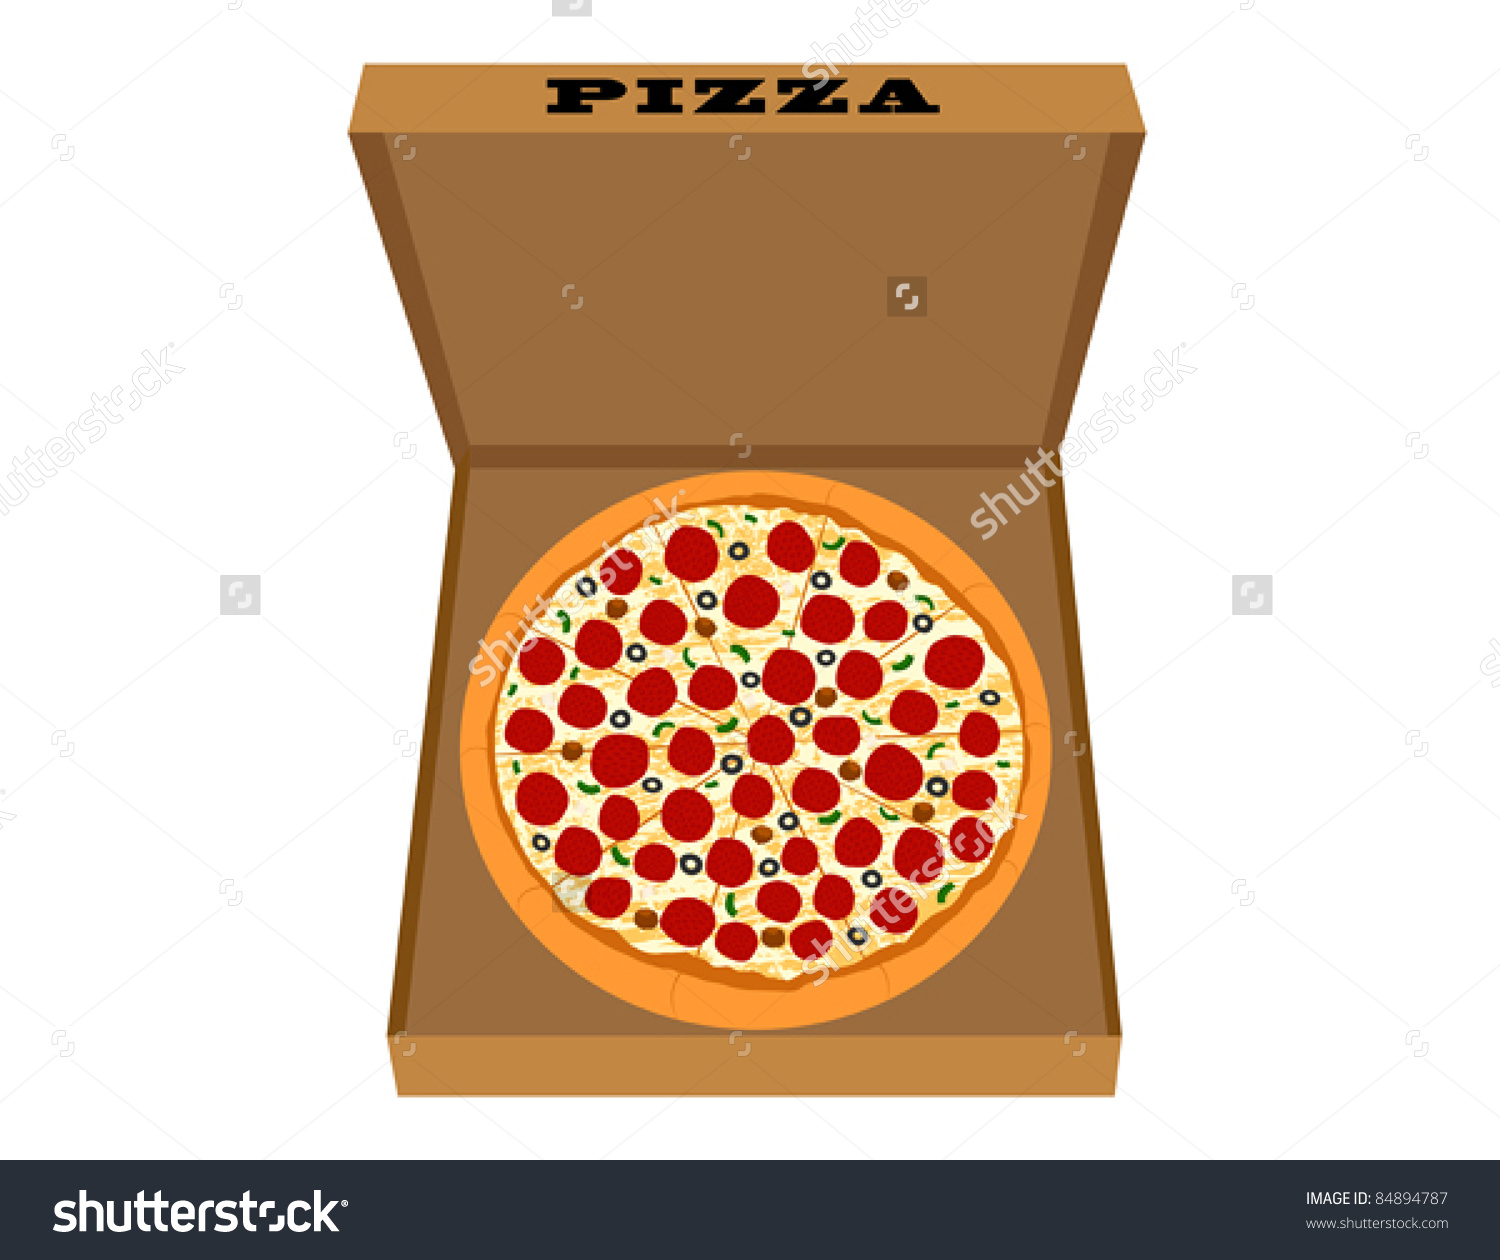 how to draw a pizza box